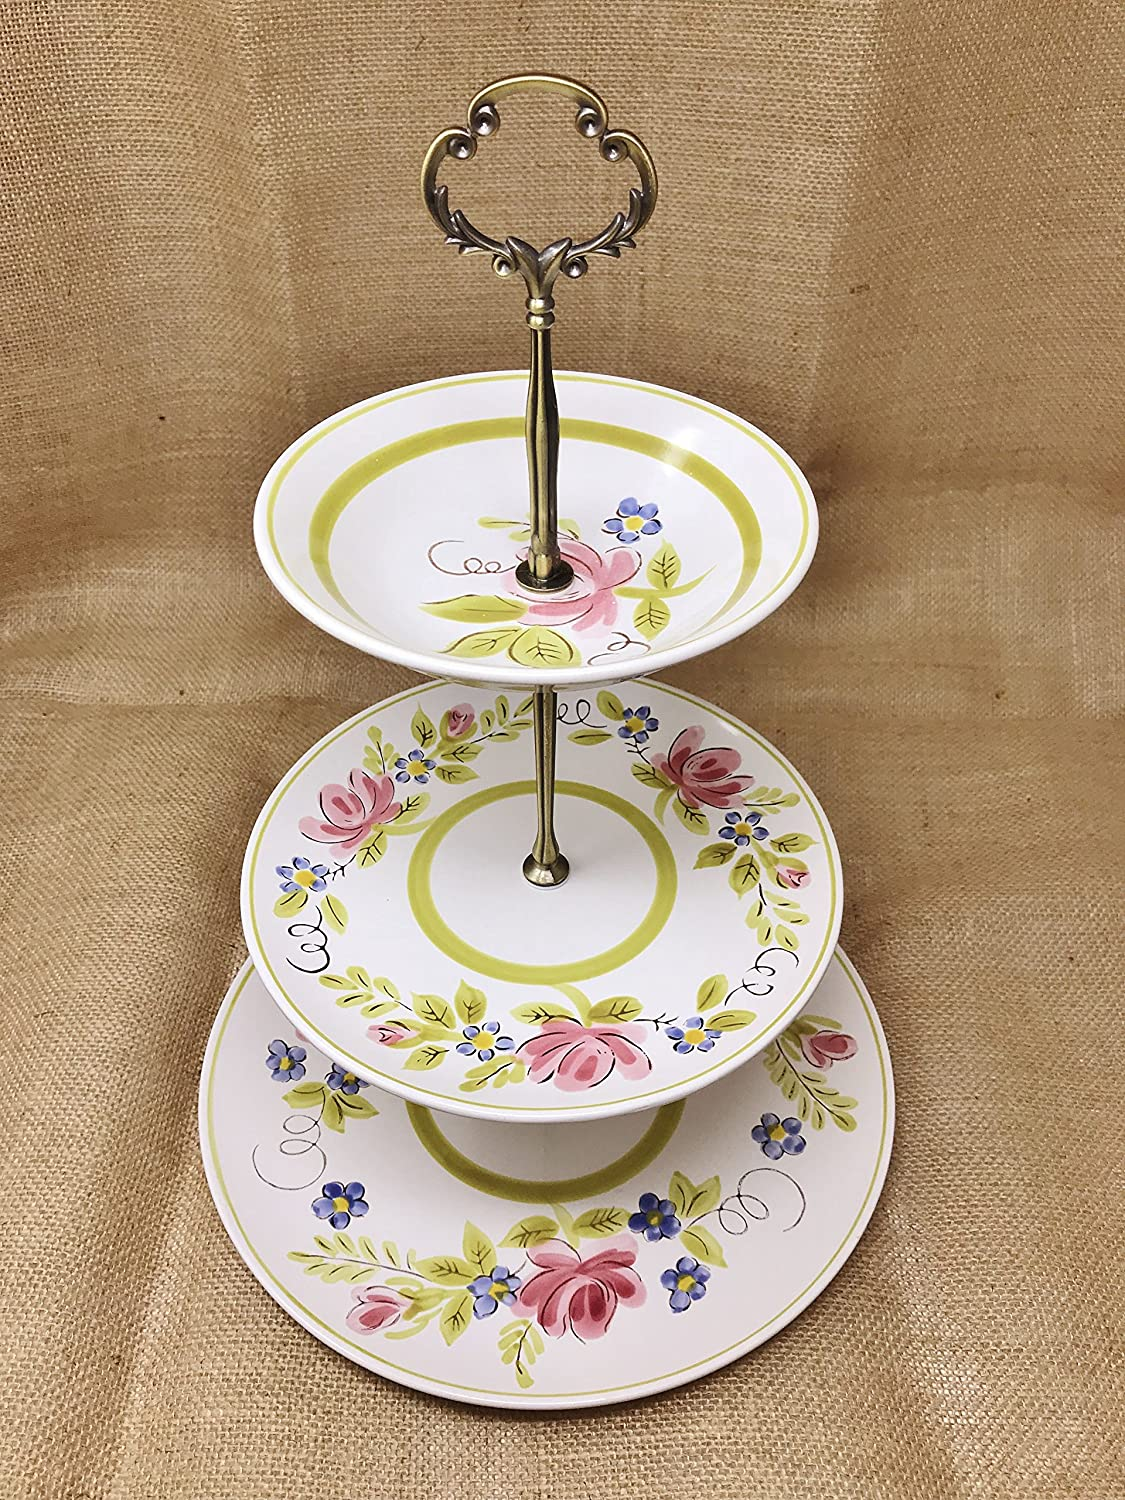 Appetizer Center Piece Black Cake Stand Cup Cake Stand Vintage Tidbit Jewelry Stand Vanity Tray Shabby Chic Three Tier Stand Dessert Stand